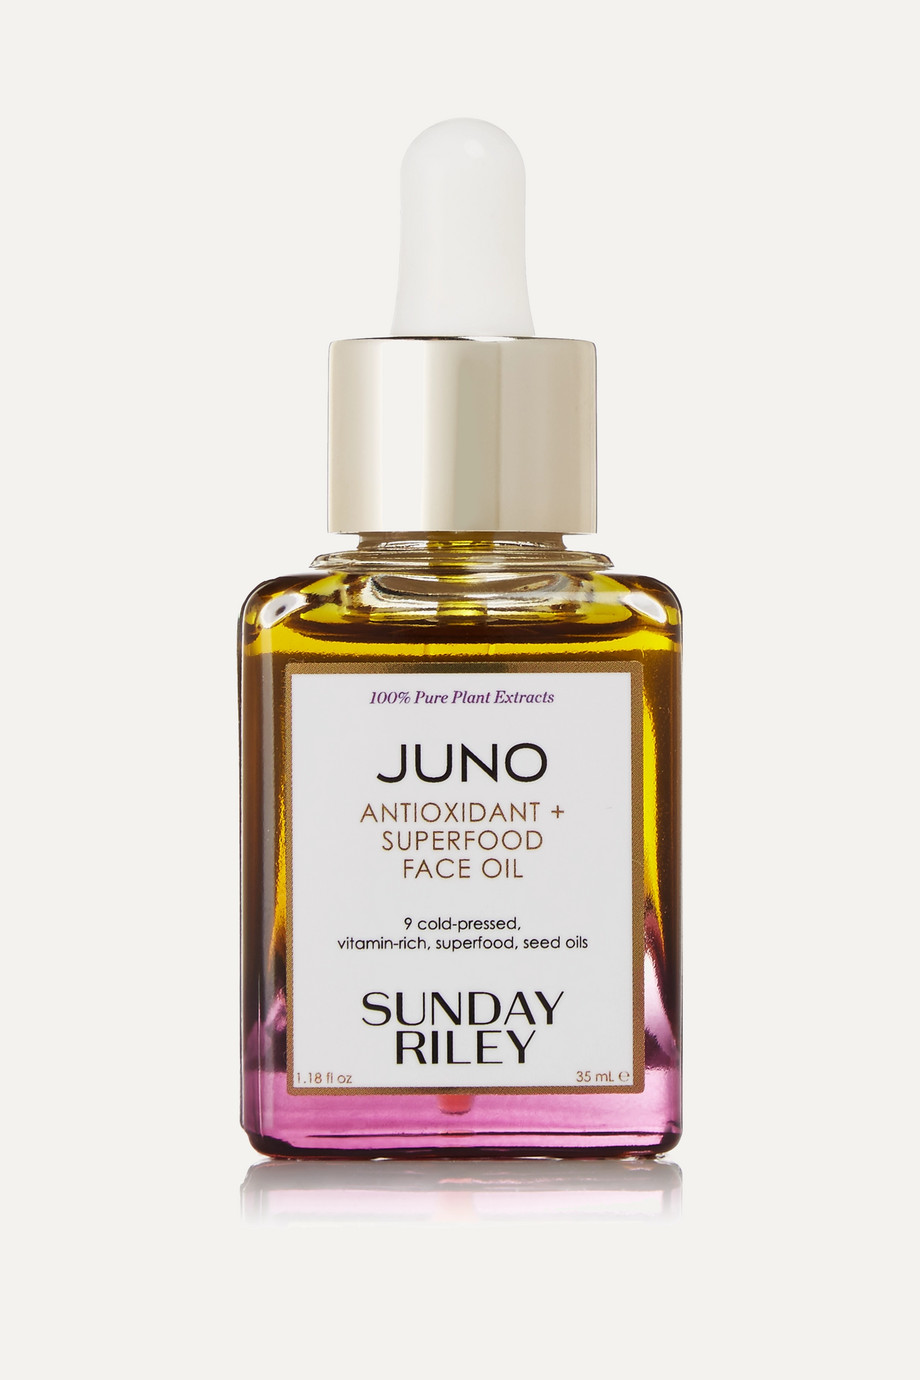 SUNDAY RILEY Juno Juno Antioxidant + Superfood Face Oil, 35ml